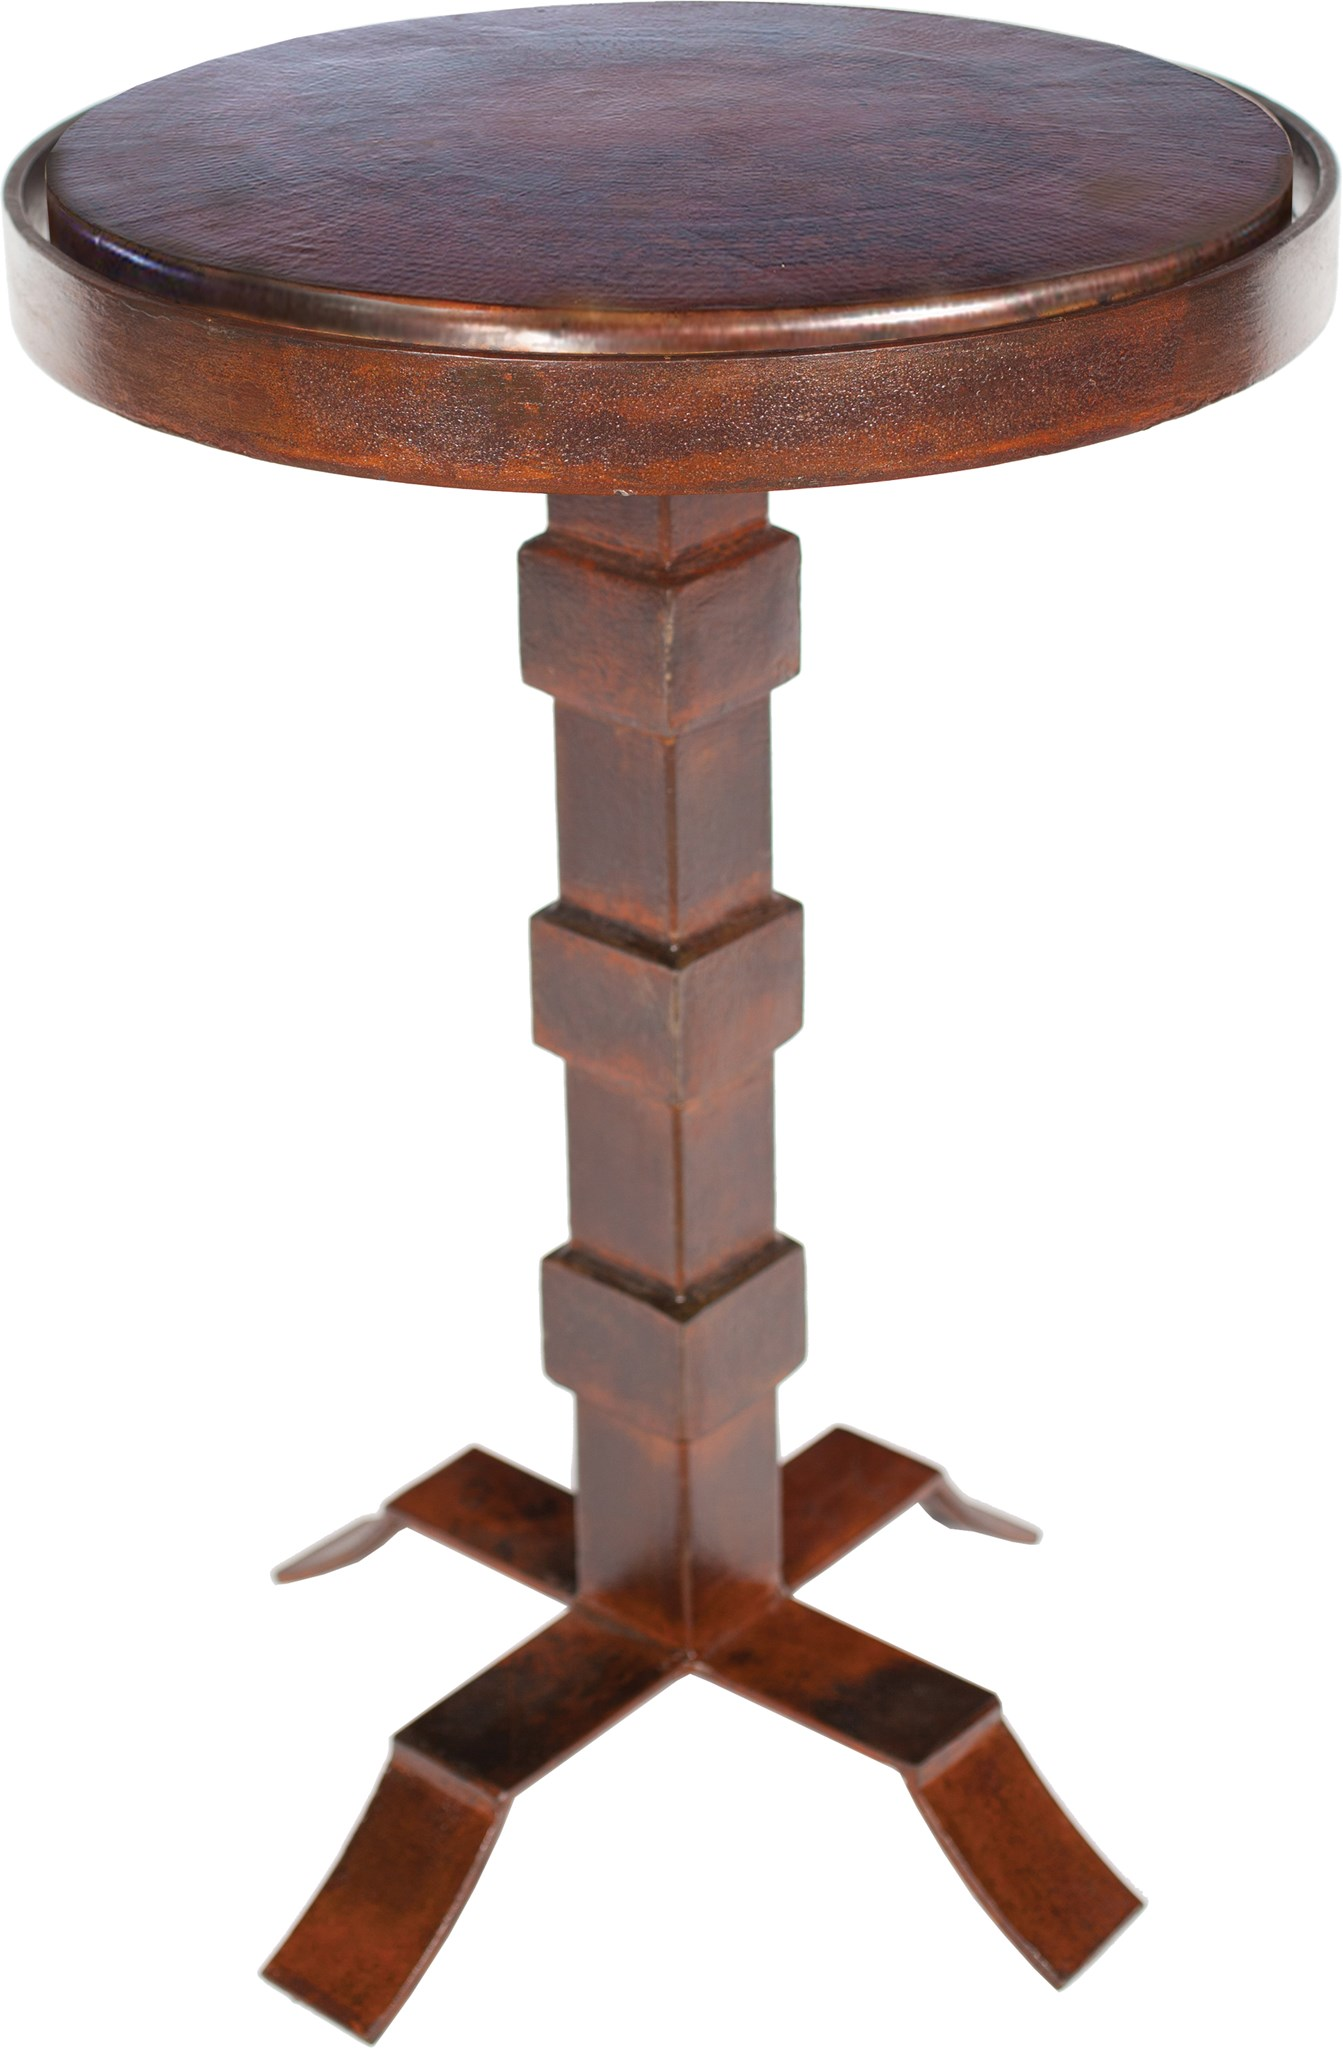 Round Iron Accent Table With Dark Brown Hammered Copper